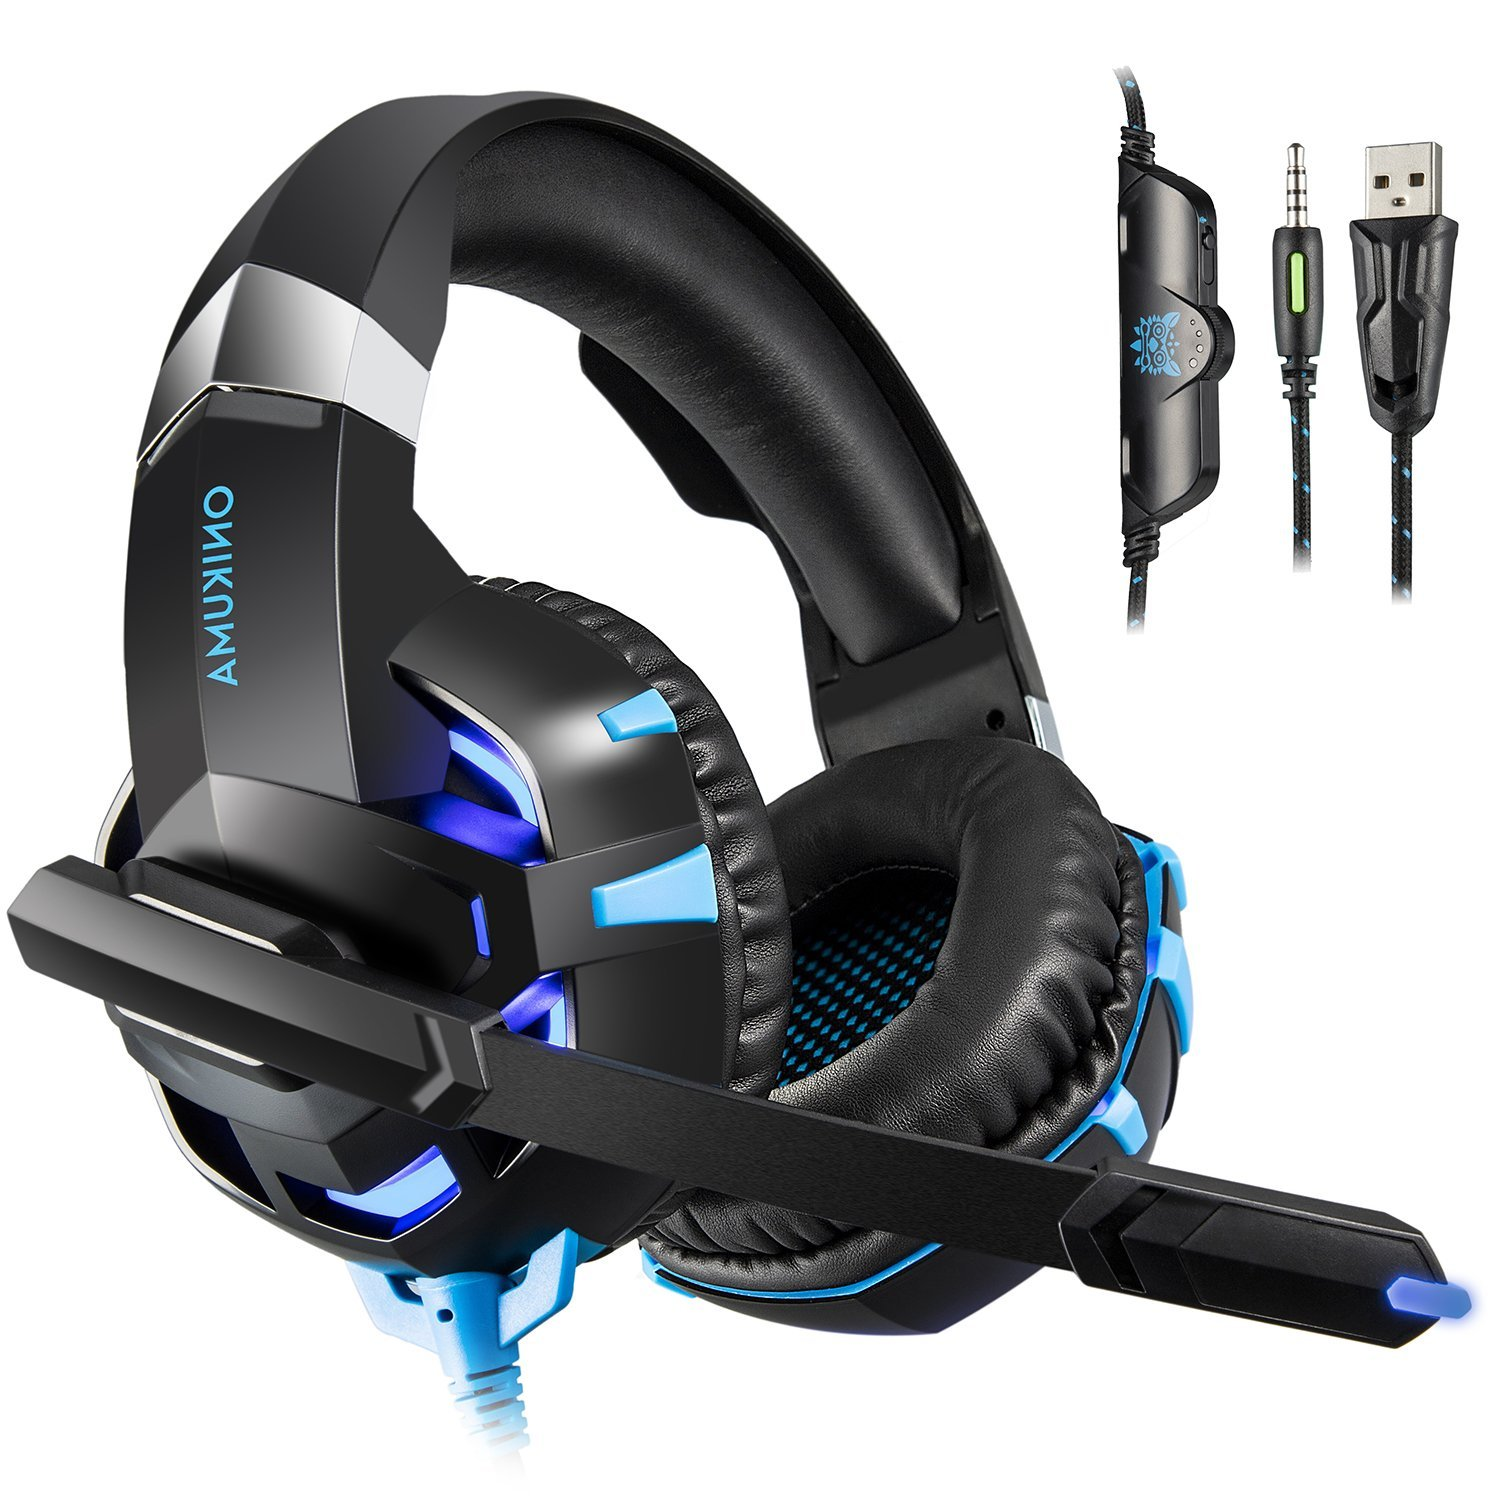 ONIKUMA K2 Gaming Headset - Headset Gaming Headphones for PS4, Xbox One, PC, Nintendo Switch, Mac, Laptop with Noise Cancelling Micphone, Soft Memory Earmuffs & LED Light